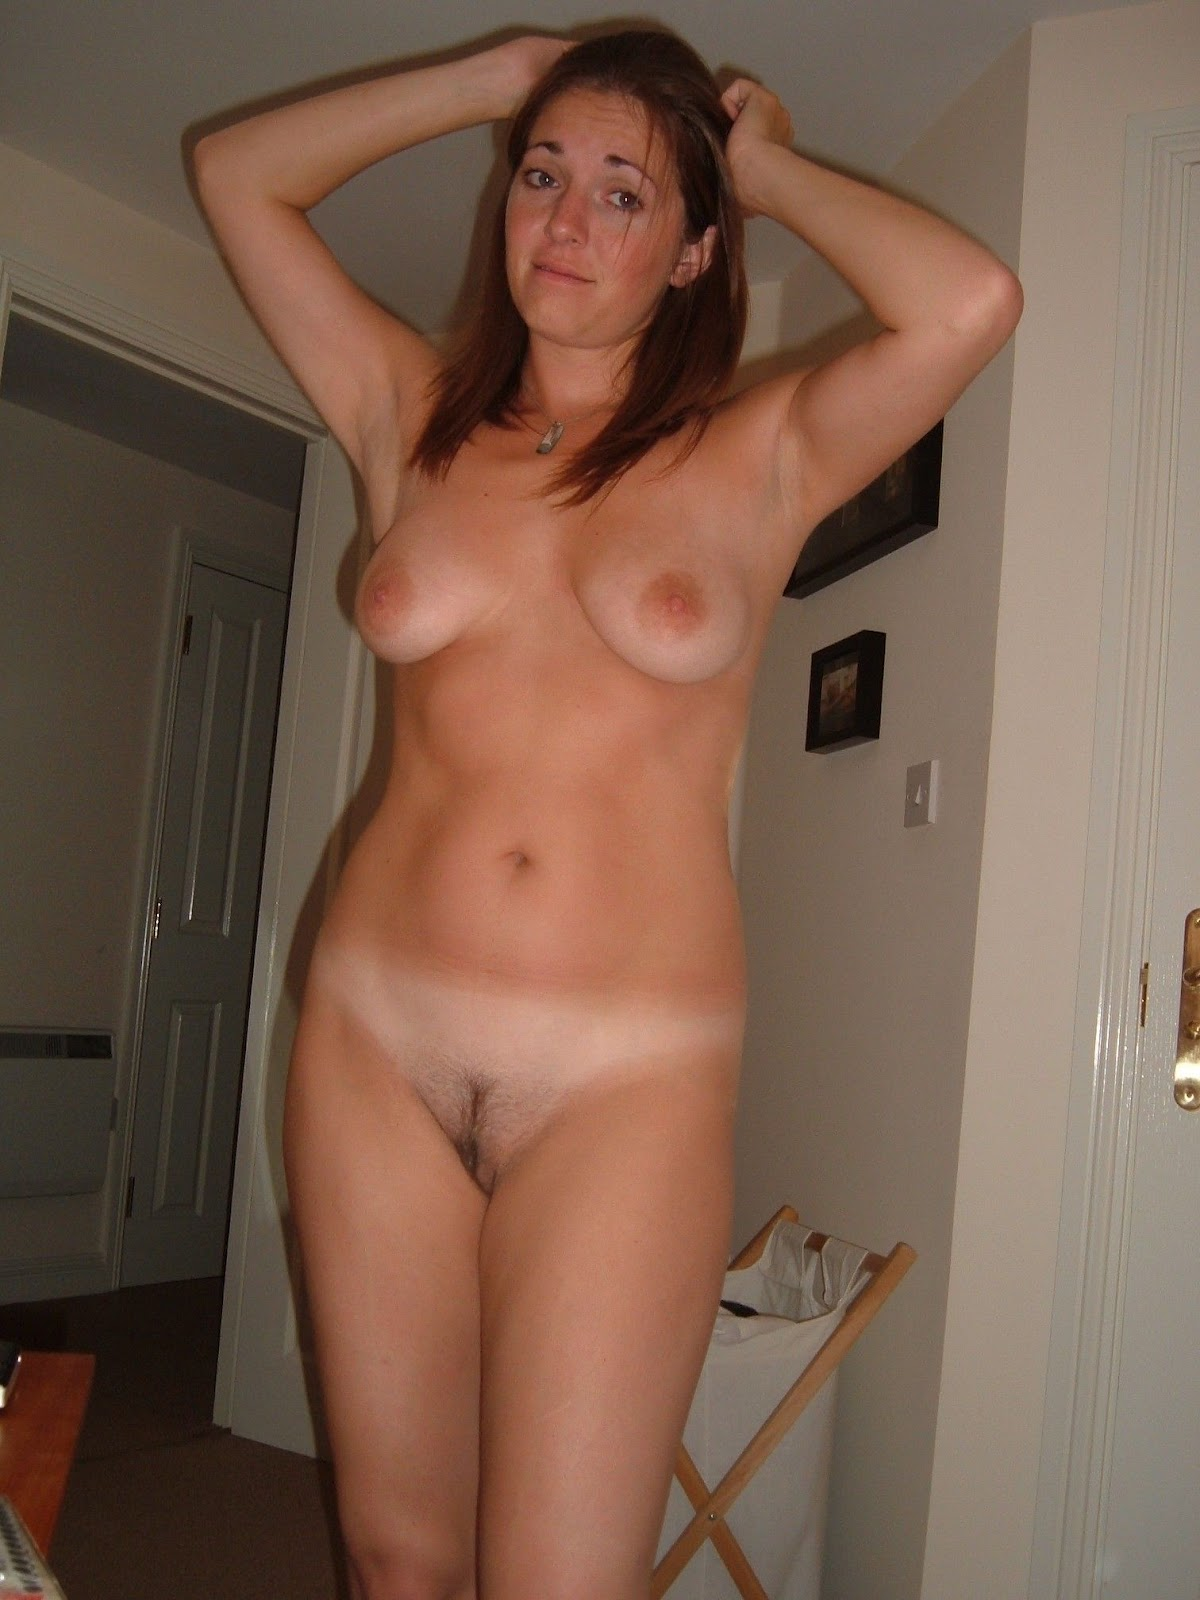 from Case caught nude amature girls